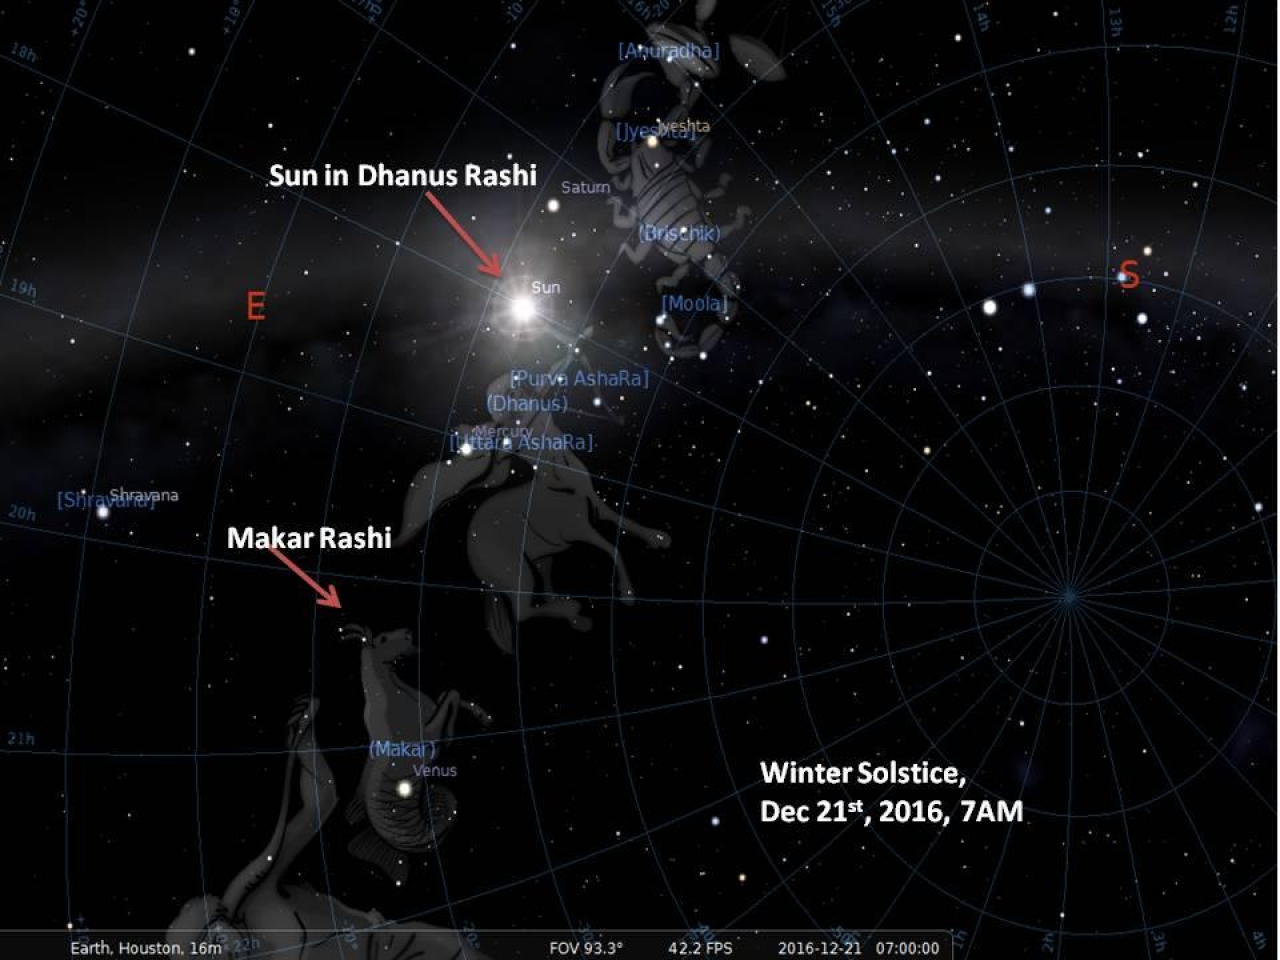 Position of the Sun in relation to the Rashis on Winter solstice, Dec 21st, 2016. Because of Precession, it is a Dhanus Sankranti, rather than a Makar Sankranti.